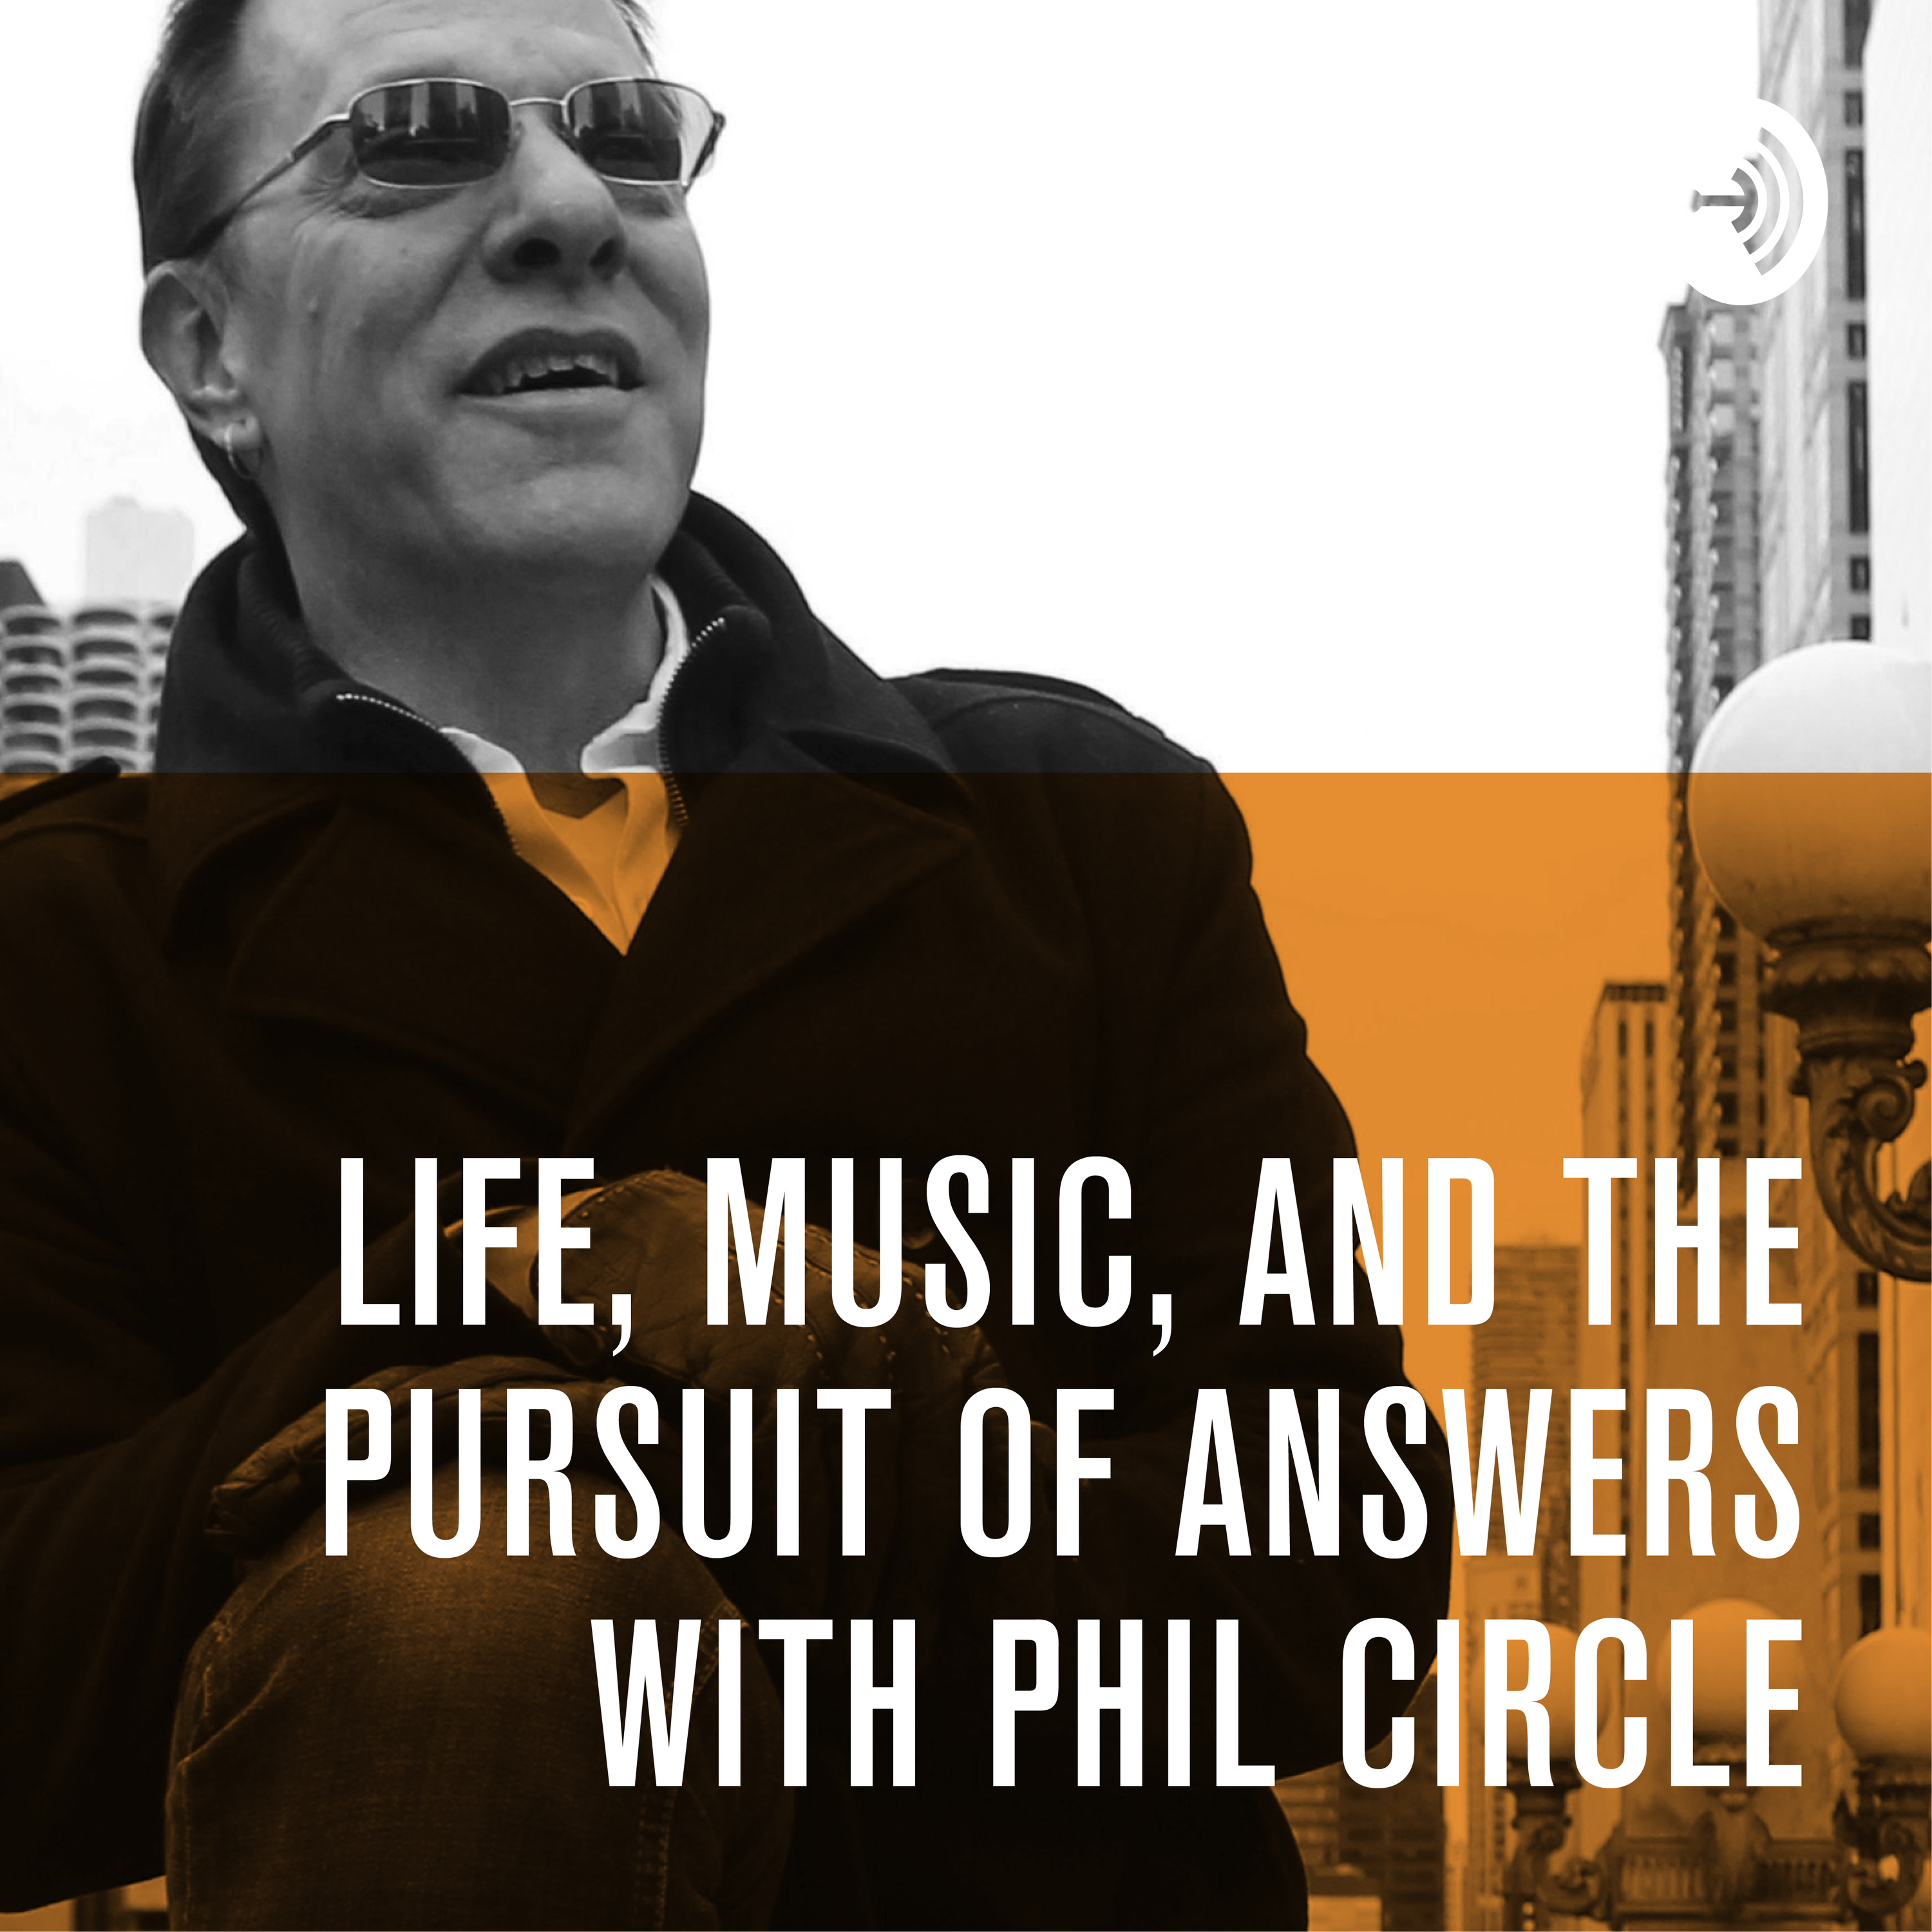 Life, Music, and the Pursuit of Answers